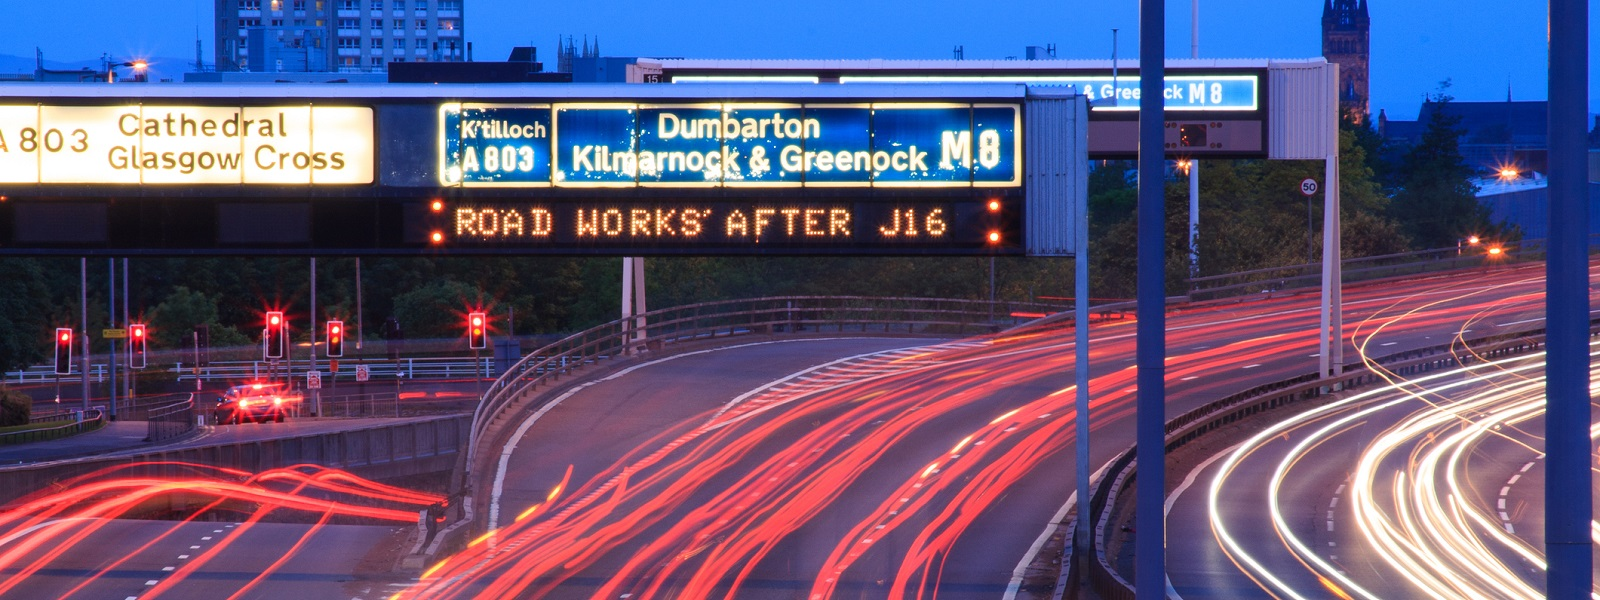 M8 Motorway at dusk showing trails of rear car lights